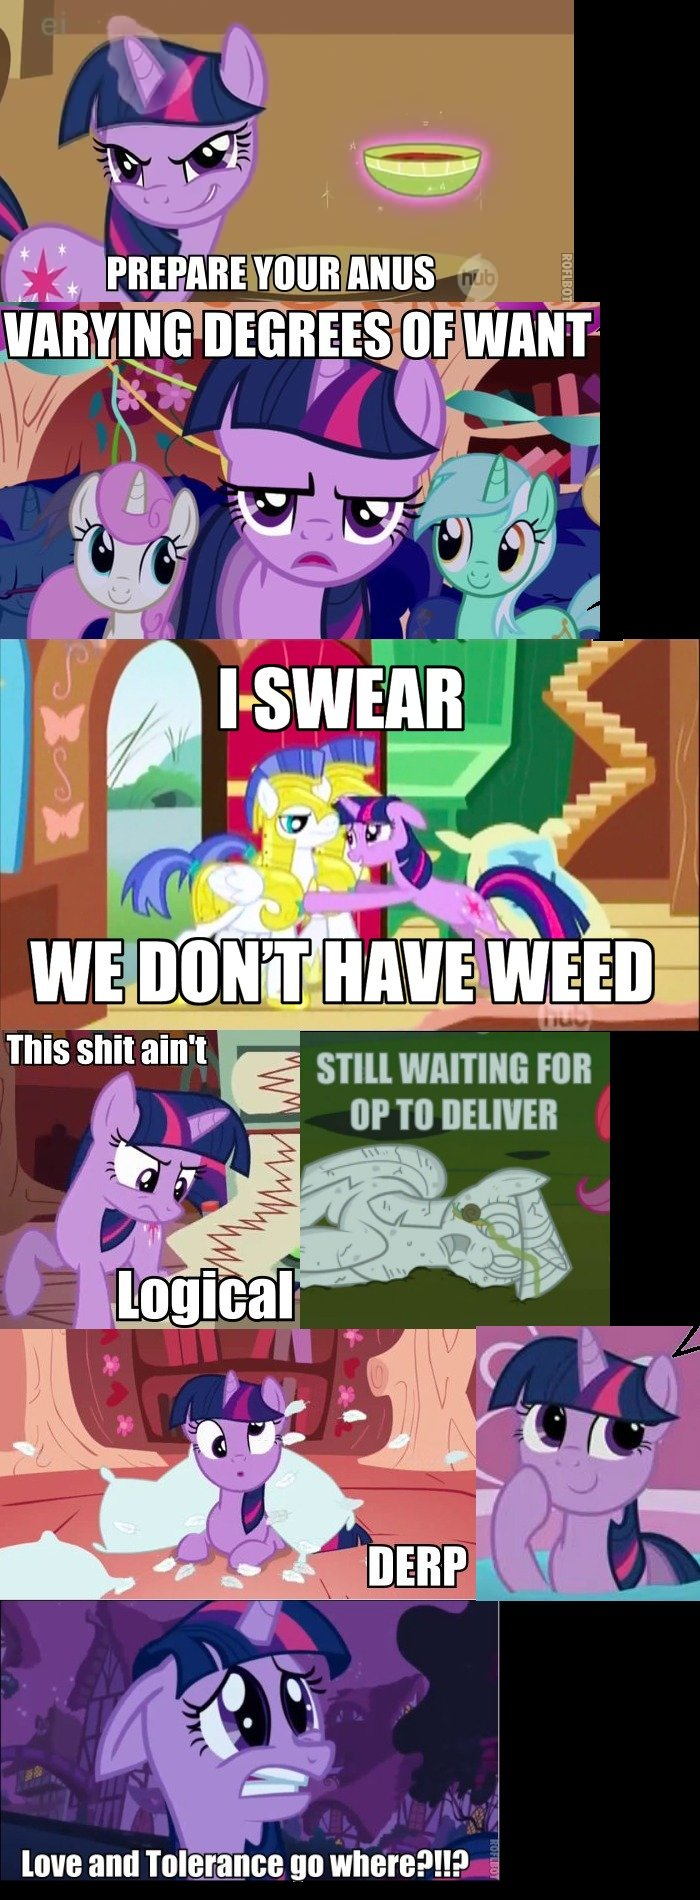 Twilight Comp. comment if you want more. Jun. Awesome! Unfortunately, I pretty much never use pony reaction pics. They always get toenail clippinged down. <This is for the next comp